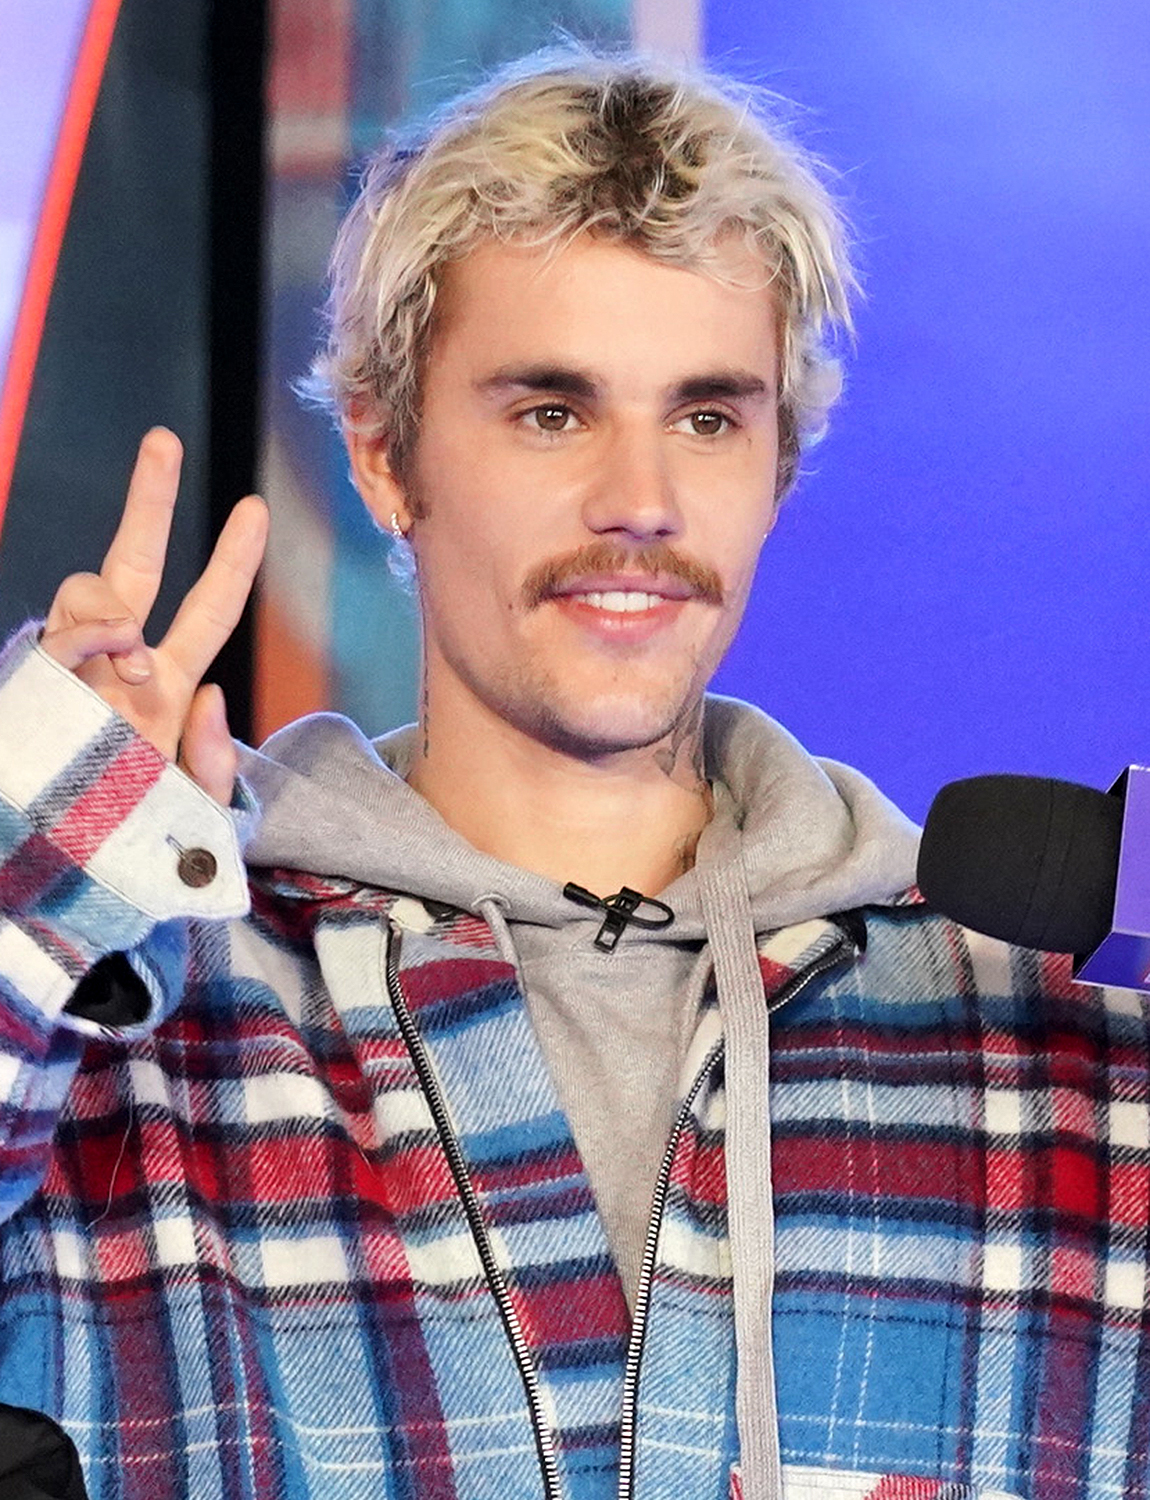 """NEW YORK, NEW YORK - FEBRUARY 07: Justin Bieber appears onstage at MTV's """"Fresh Out Live"""" on February 07, 2020 in New York City."""